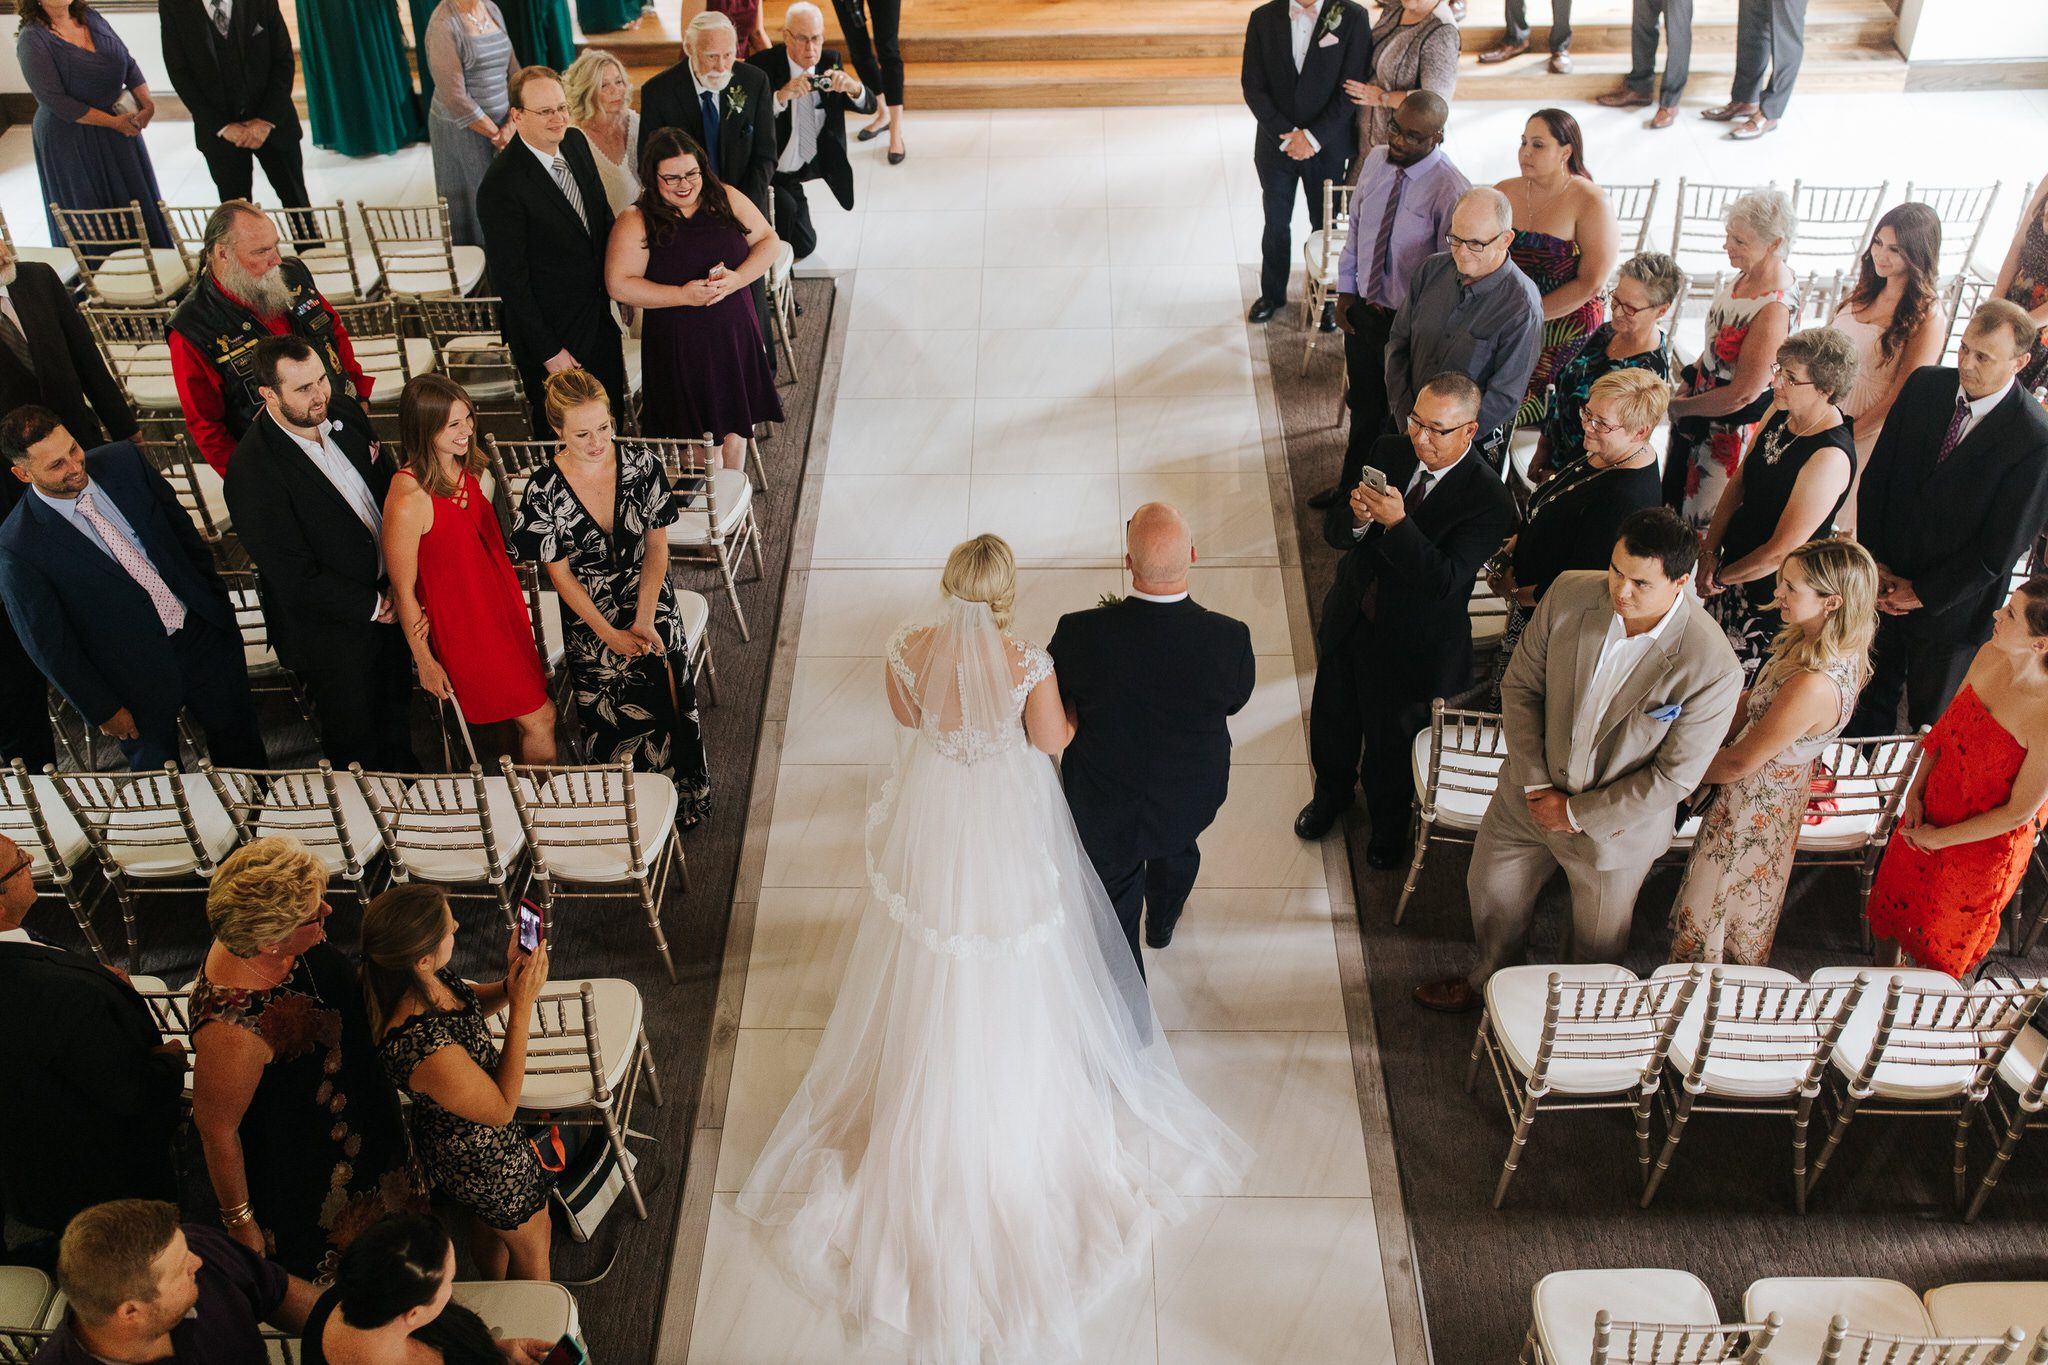 Ancaster Mill Wedding - bride and father walk down aisle